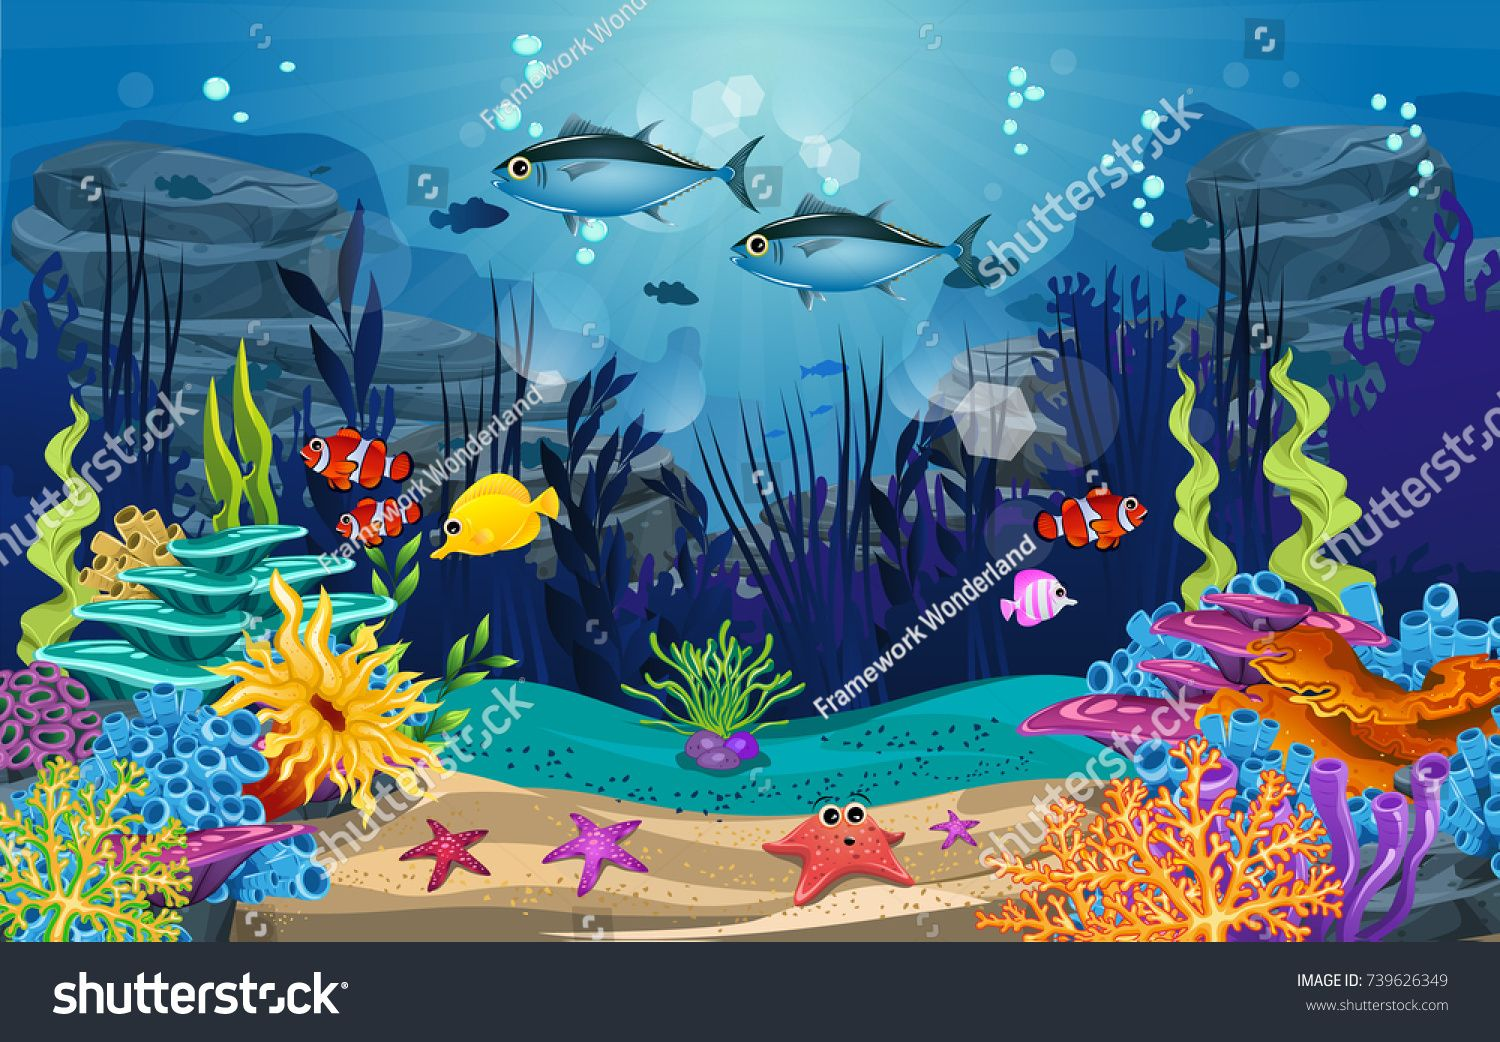 Underwater Illustration And Life Fish Algae And Coral Reefs Are Beautiful And Colorful Schablonen Ocean underwater life fish corals algae